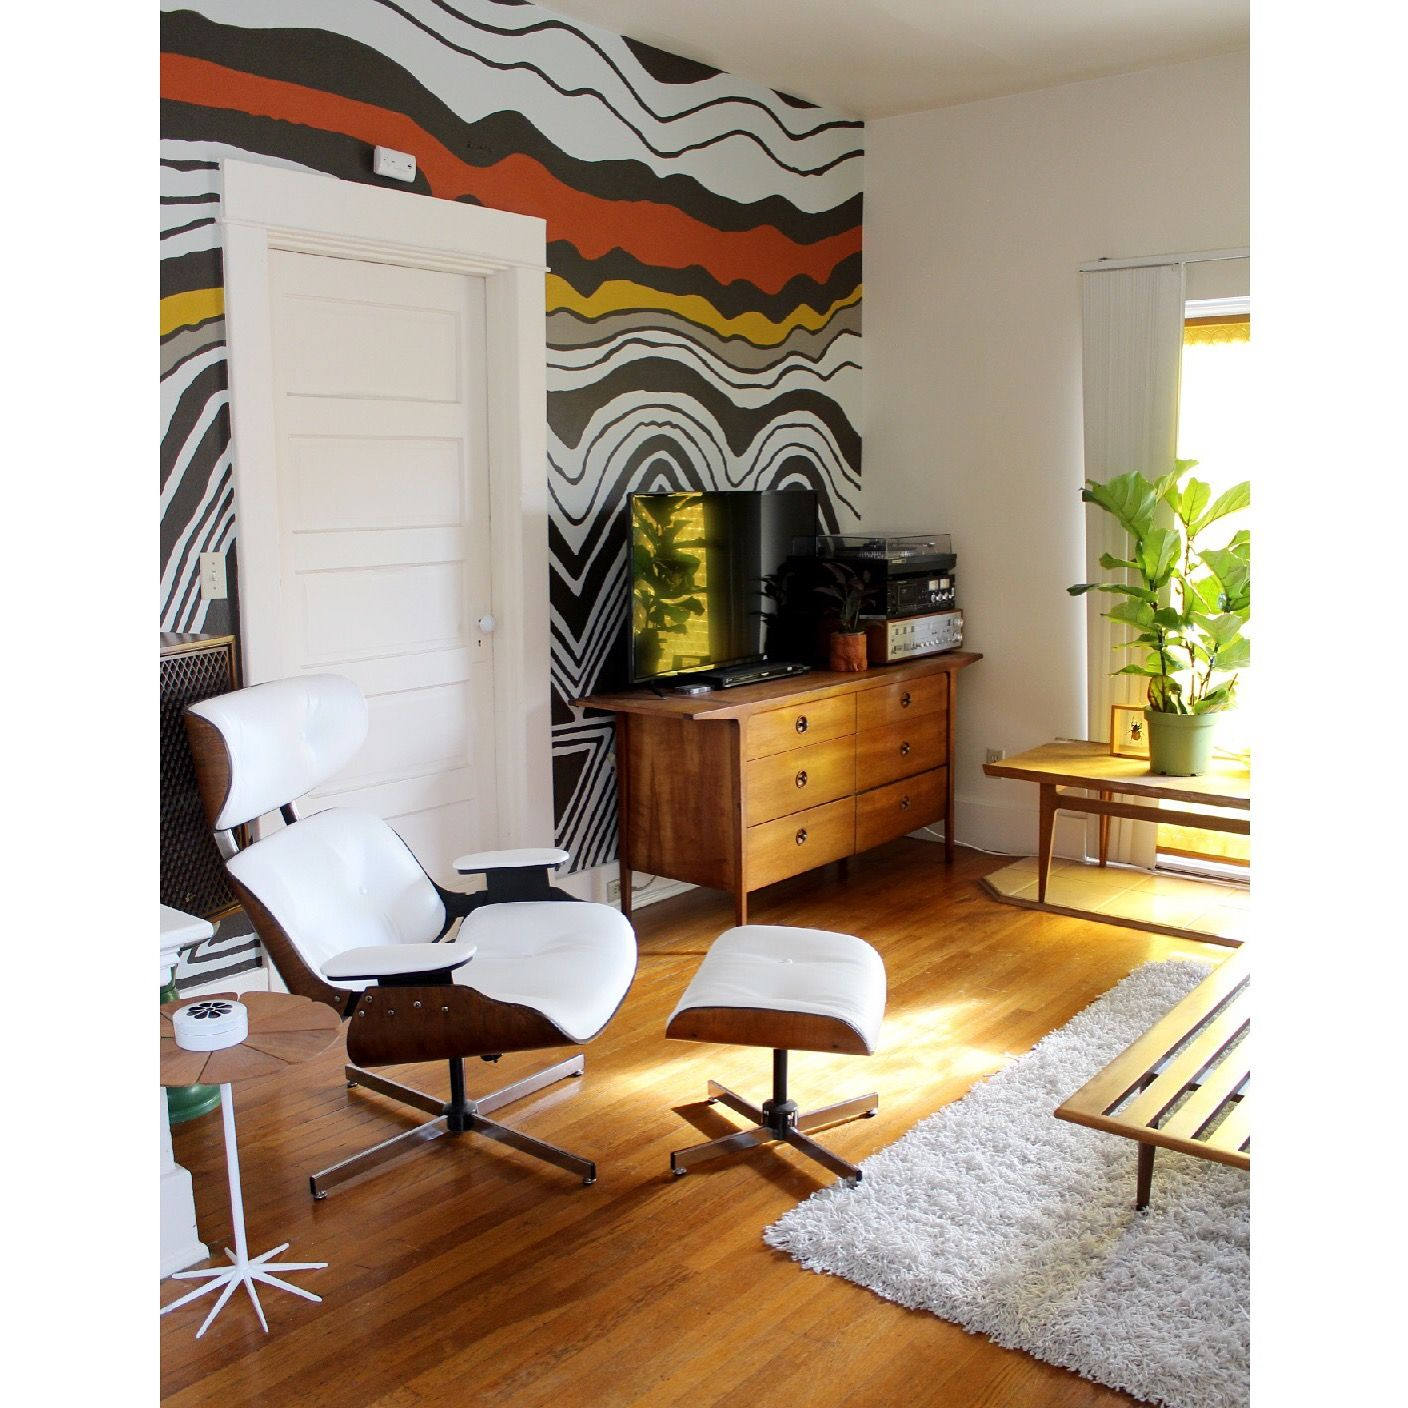 70s Inspired Super Graphic I Painted On My Living Room Wall 70s 70sdecor Midcentury Midcenturydecor Supe Striped Walls Interior Spaces Mid Century Decor